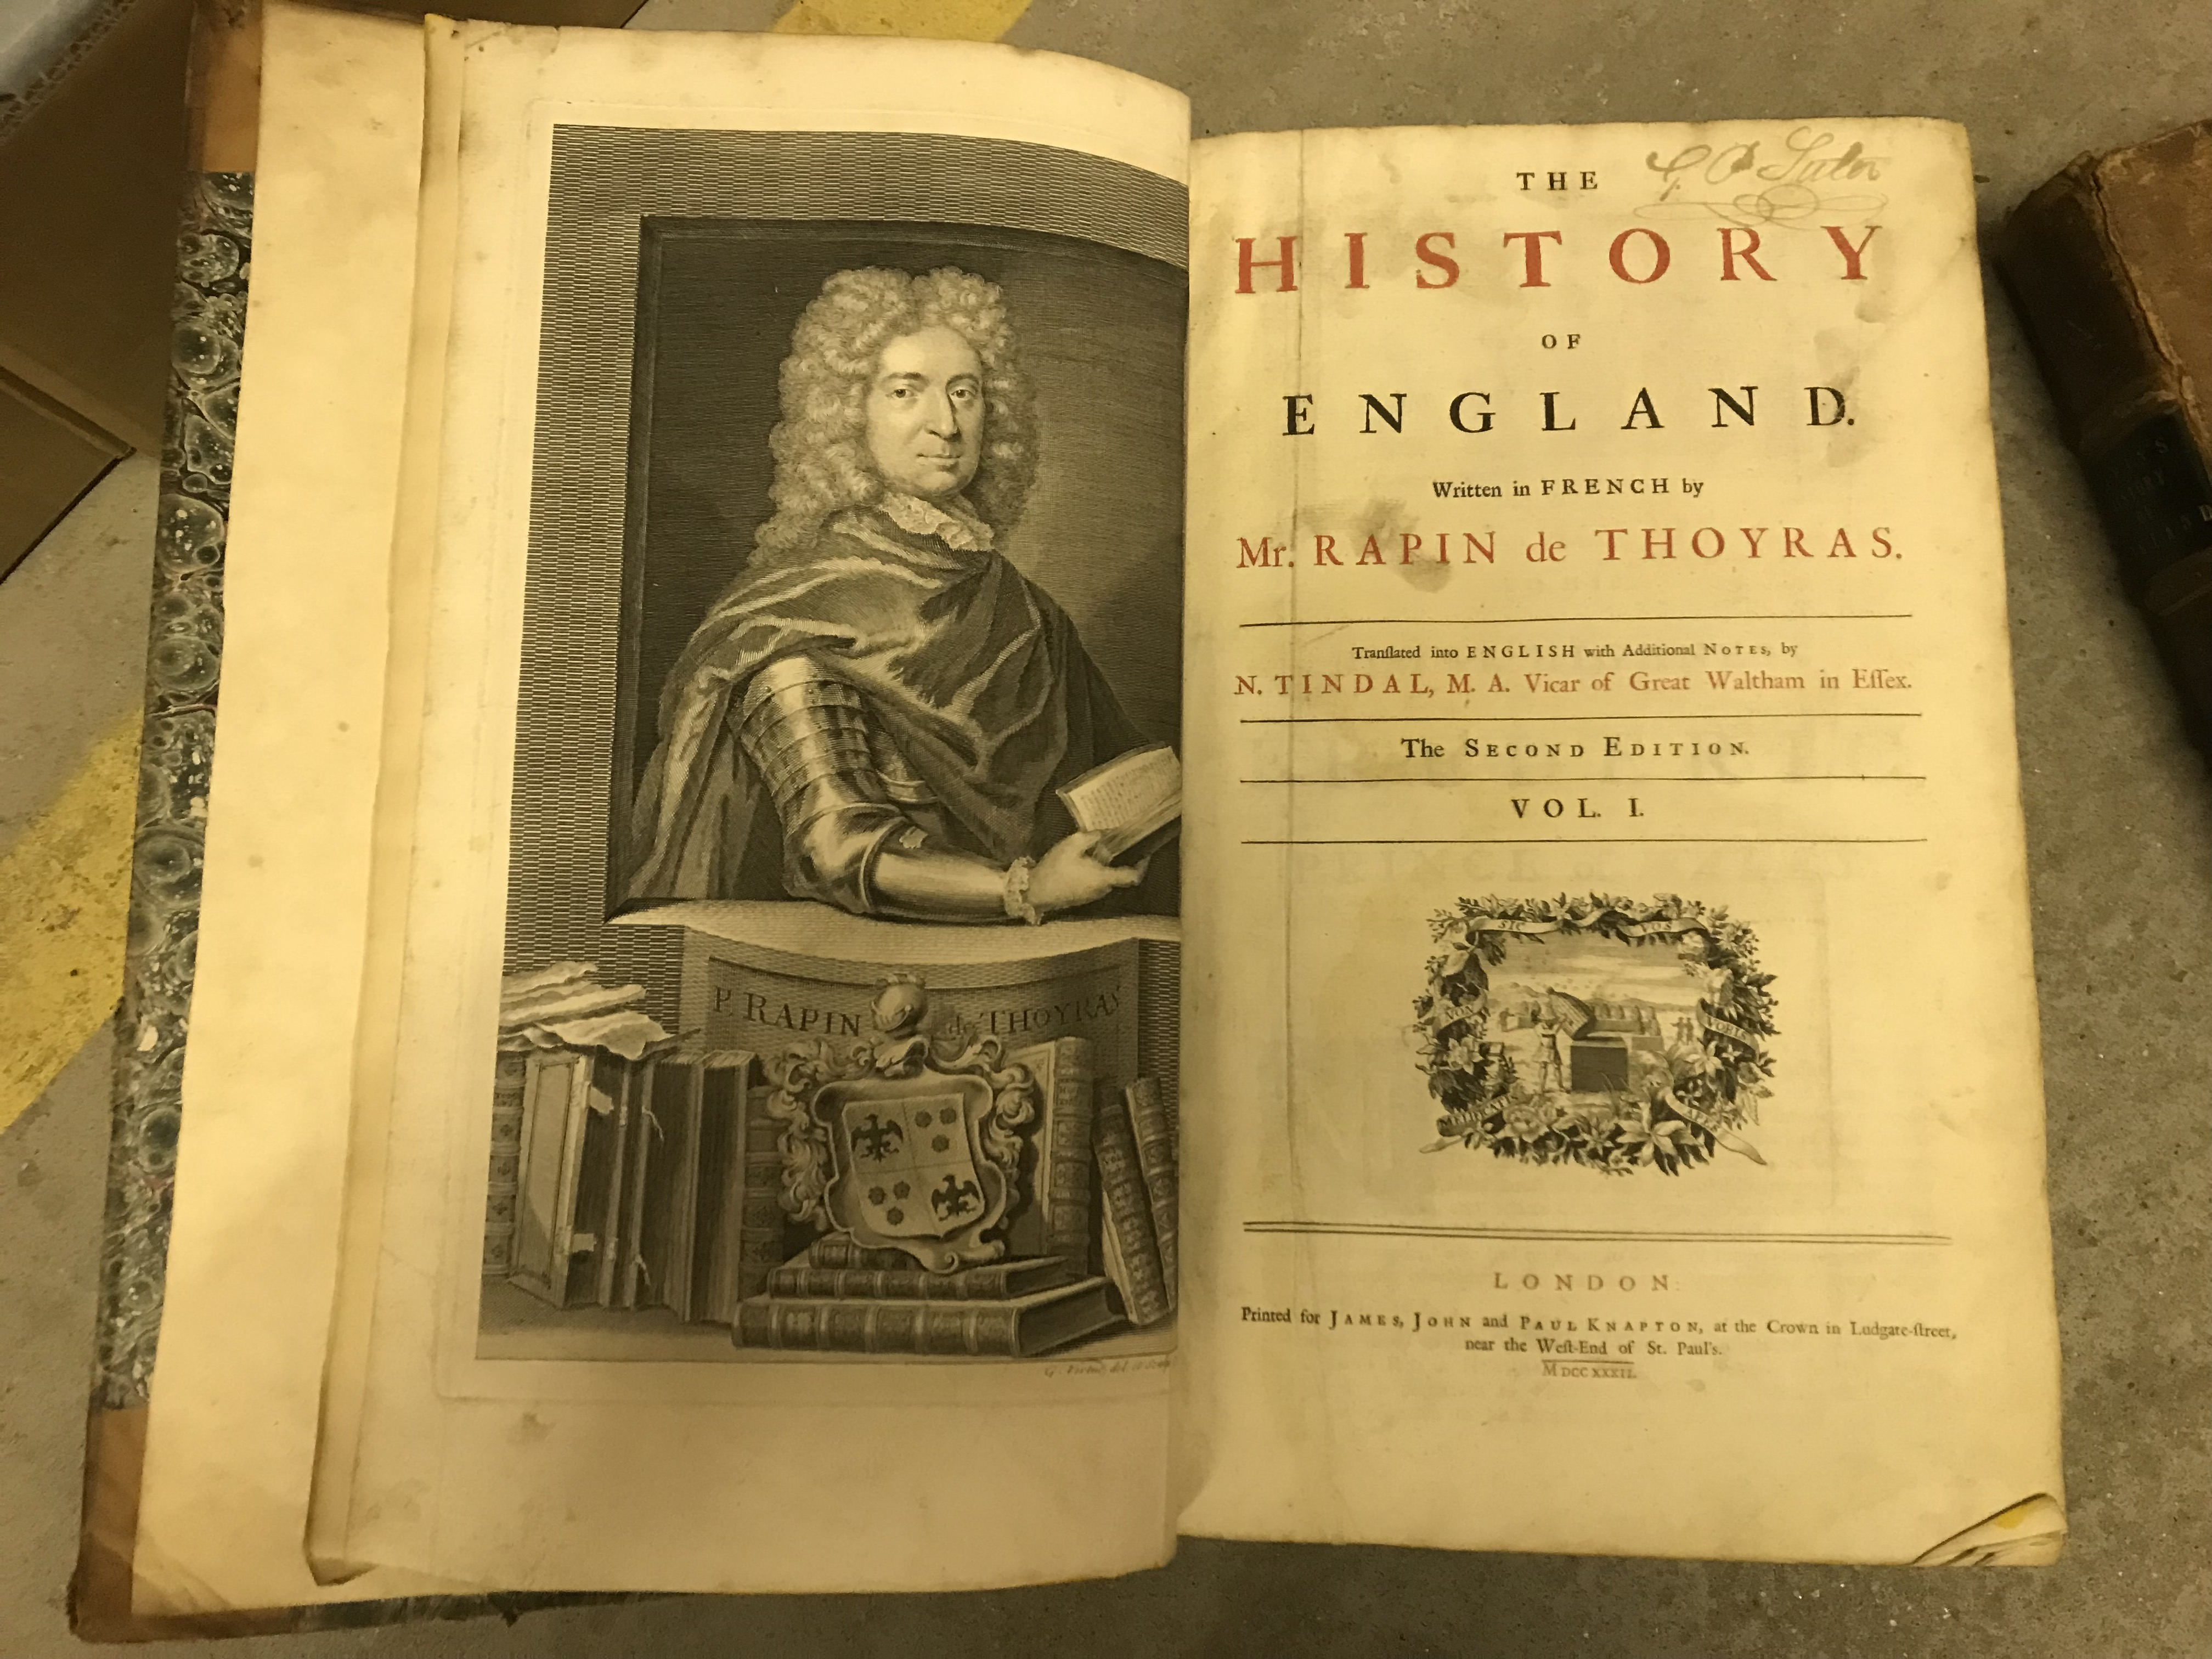 """RAPIN DE THOYRAS """"The History of England"""", second edition, vols I and II, 1732 and 1733, printed - Image 2 of 4"""